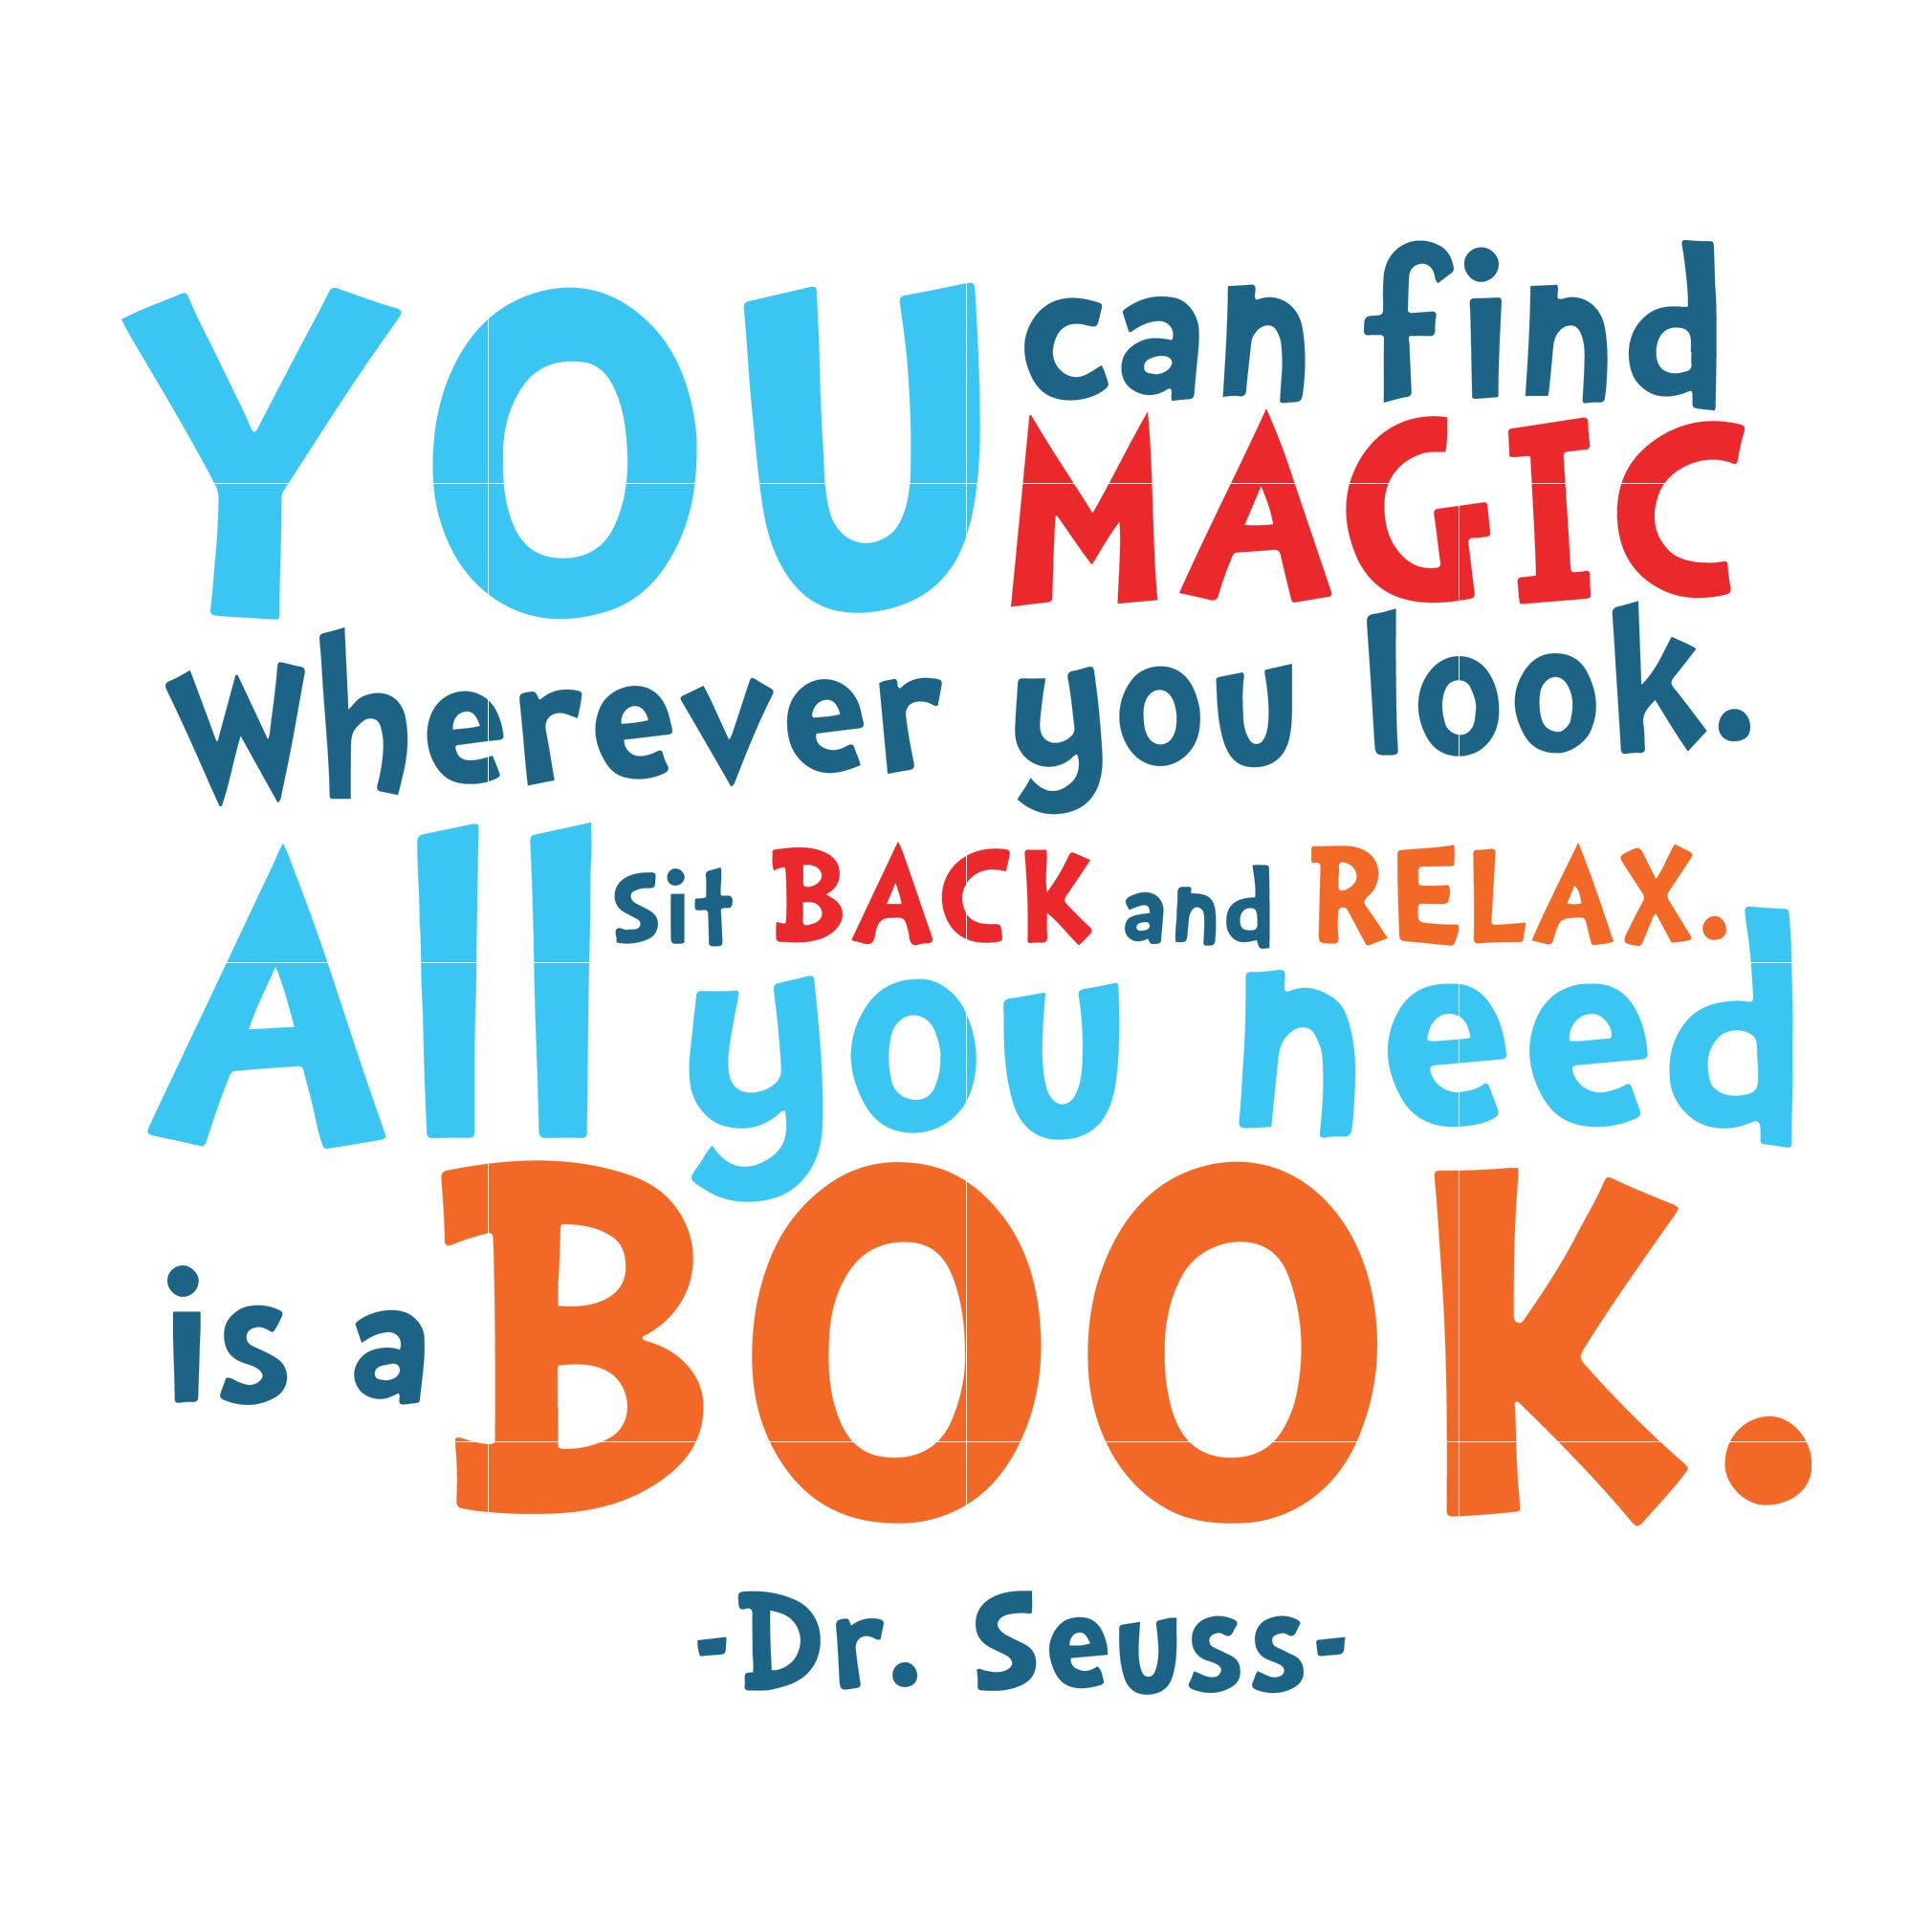 You can find magic wherever you look sit back and relax all you need is a book, dr seuss svg, dr seuss quotes, digital file